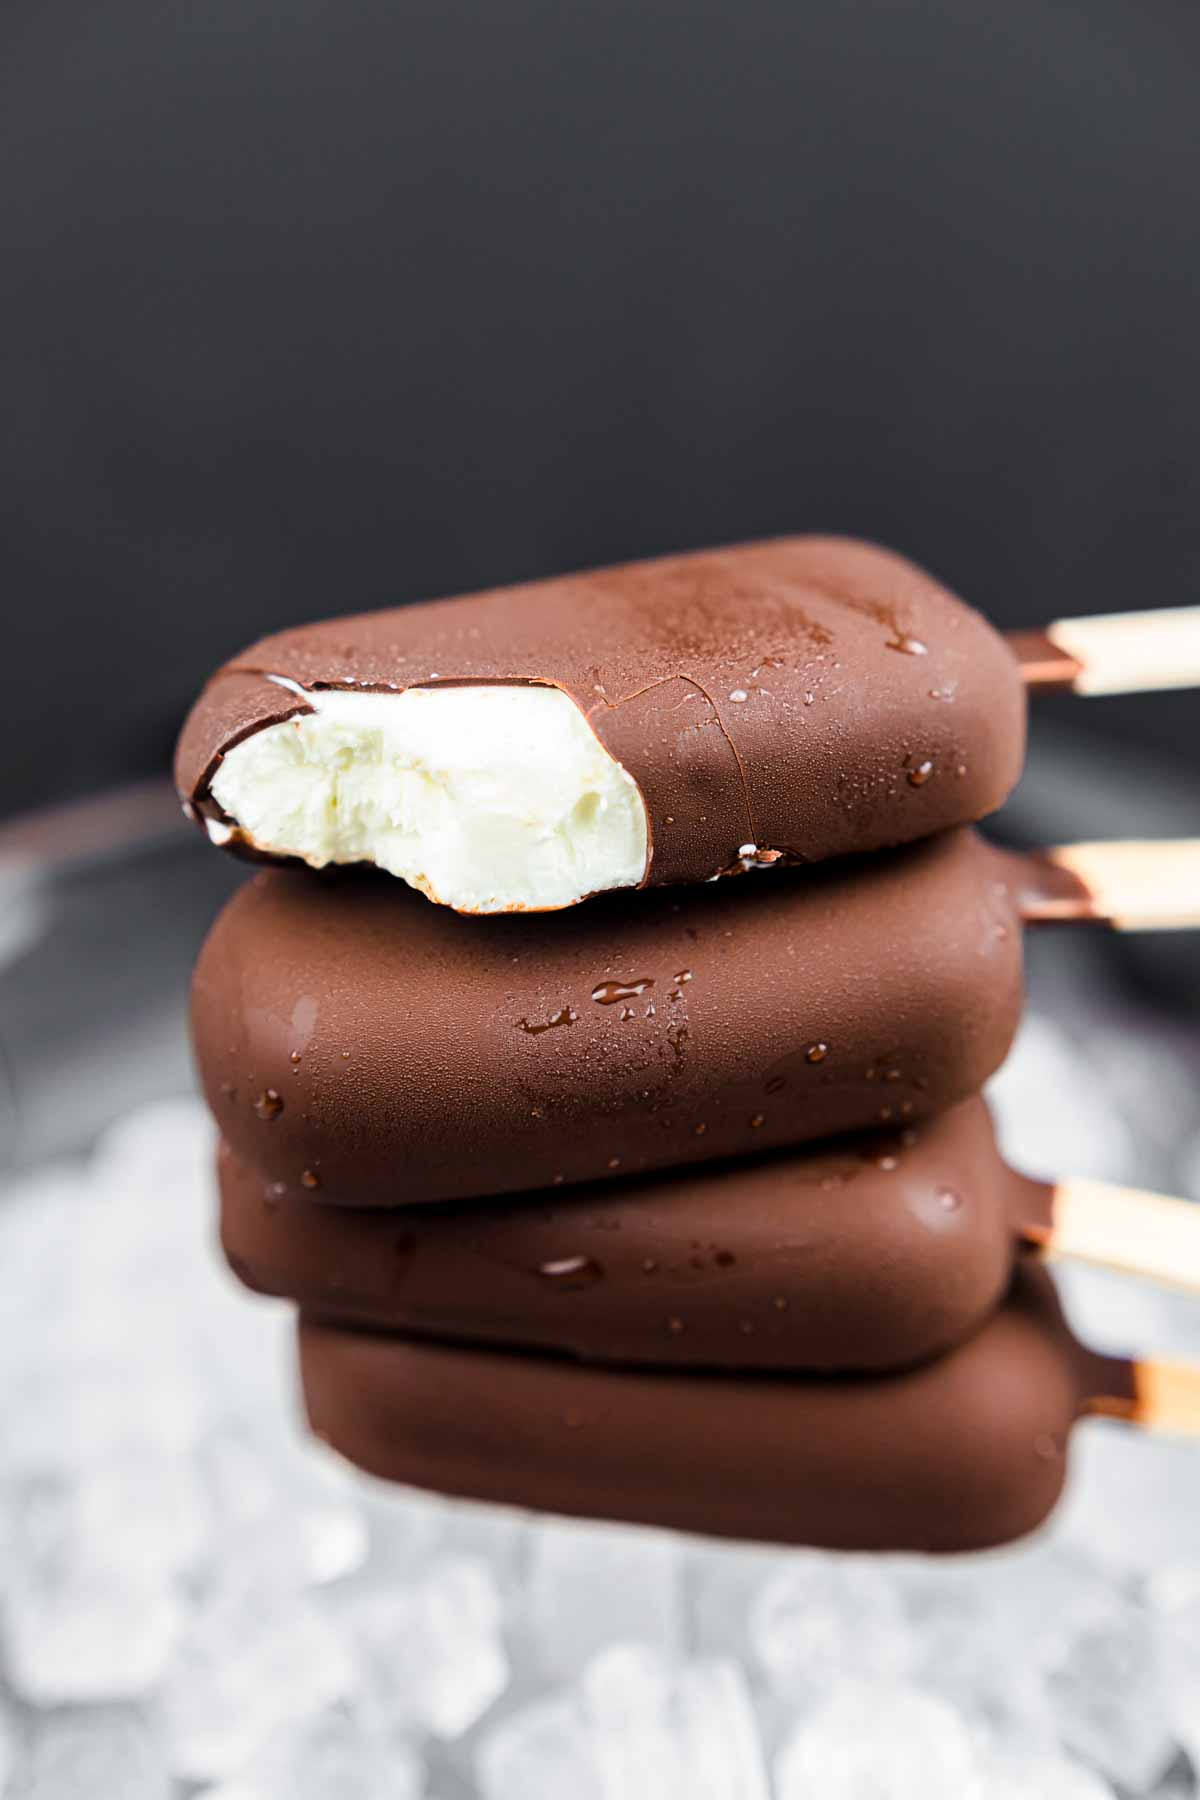 Sugar-Free Chocolate Magic Shell Syrup covered with Skyr Yoghurt Ice Bars